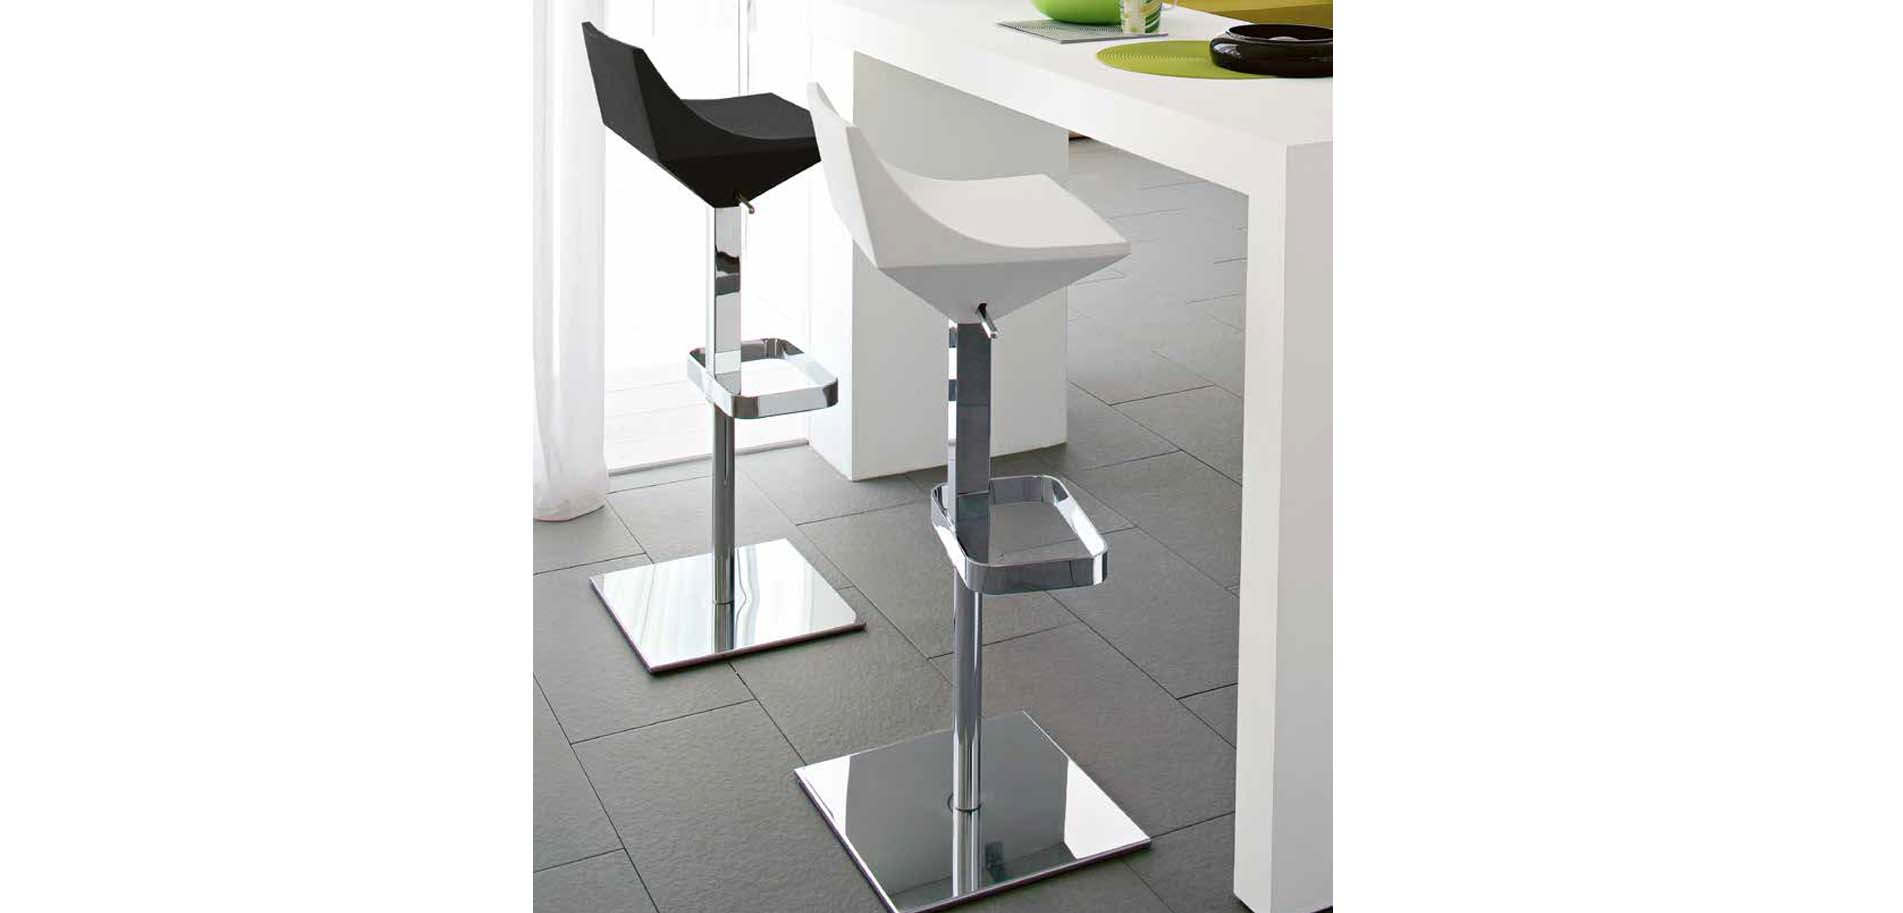 Fly Table Bar Fly Bar Stool From Connubia Calligaris Έπιπλο Φωτιστικό